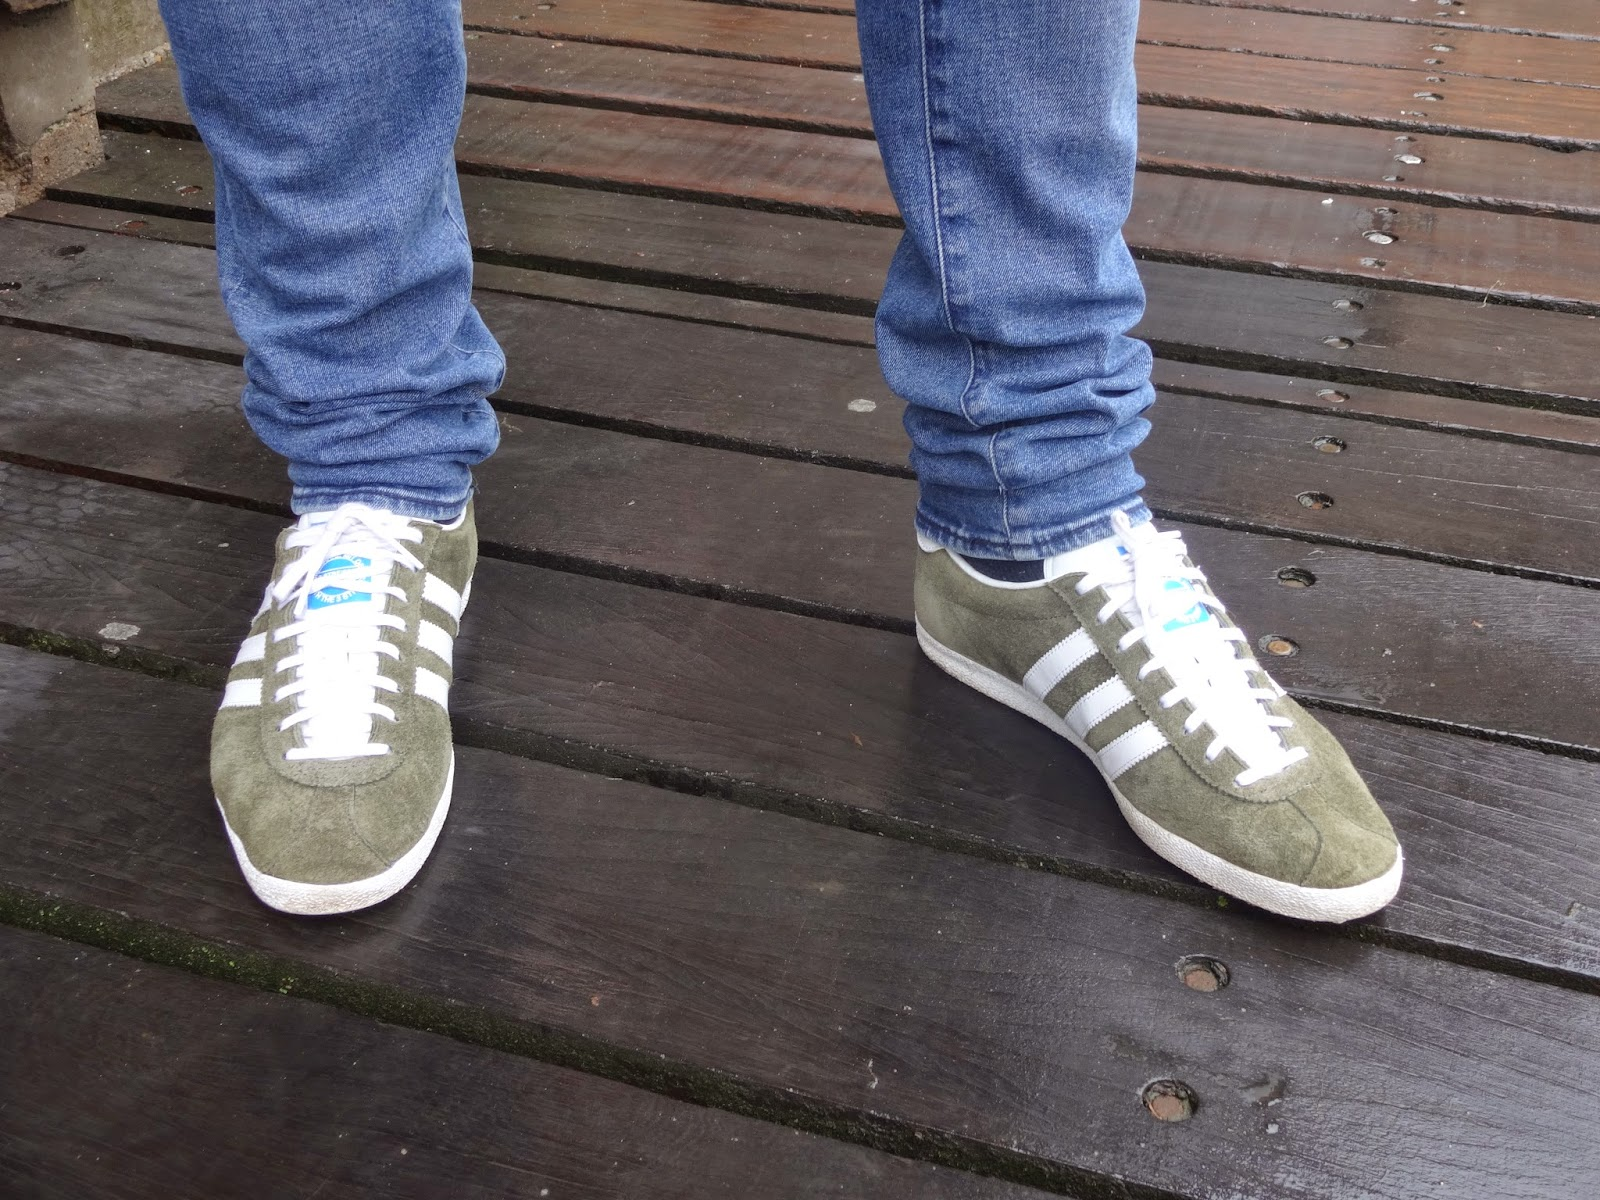 Adidas Gazelle Og Tent Green/White & On My Feet Today: Adidas Gazelle Og Tent Green/White